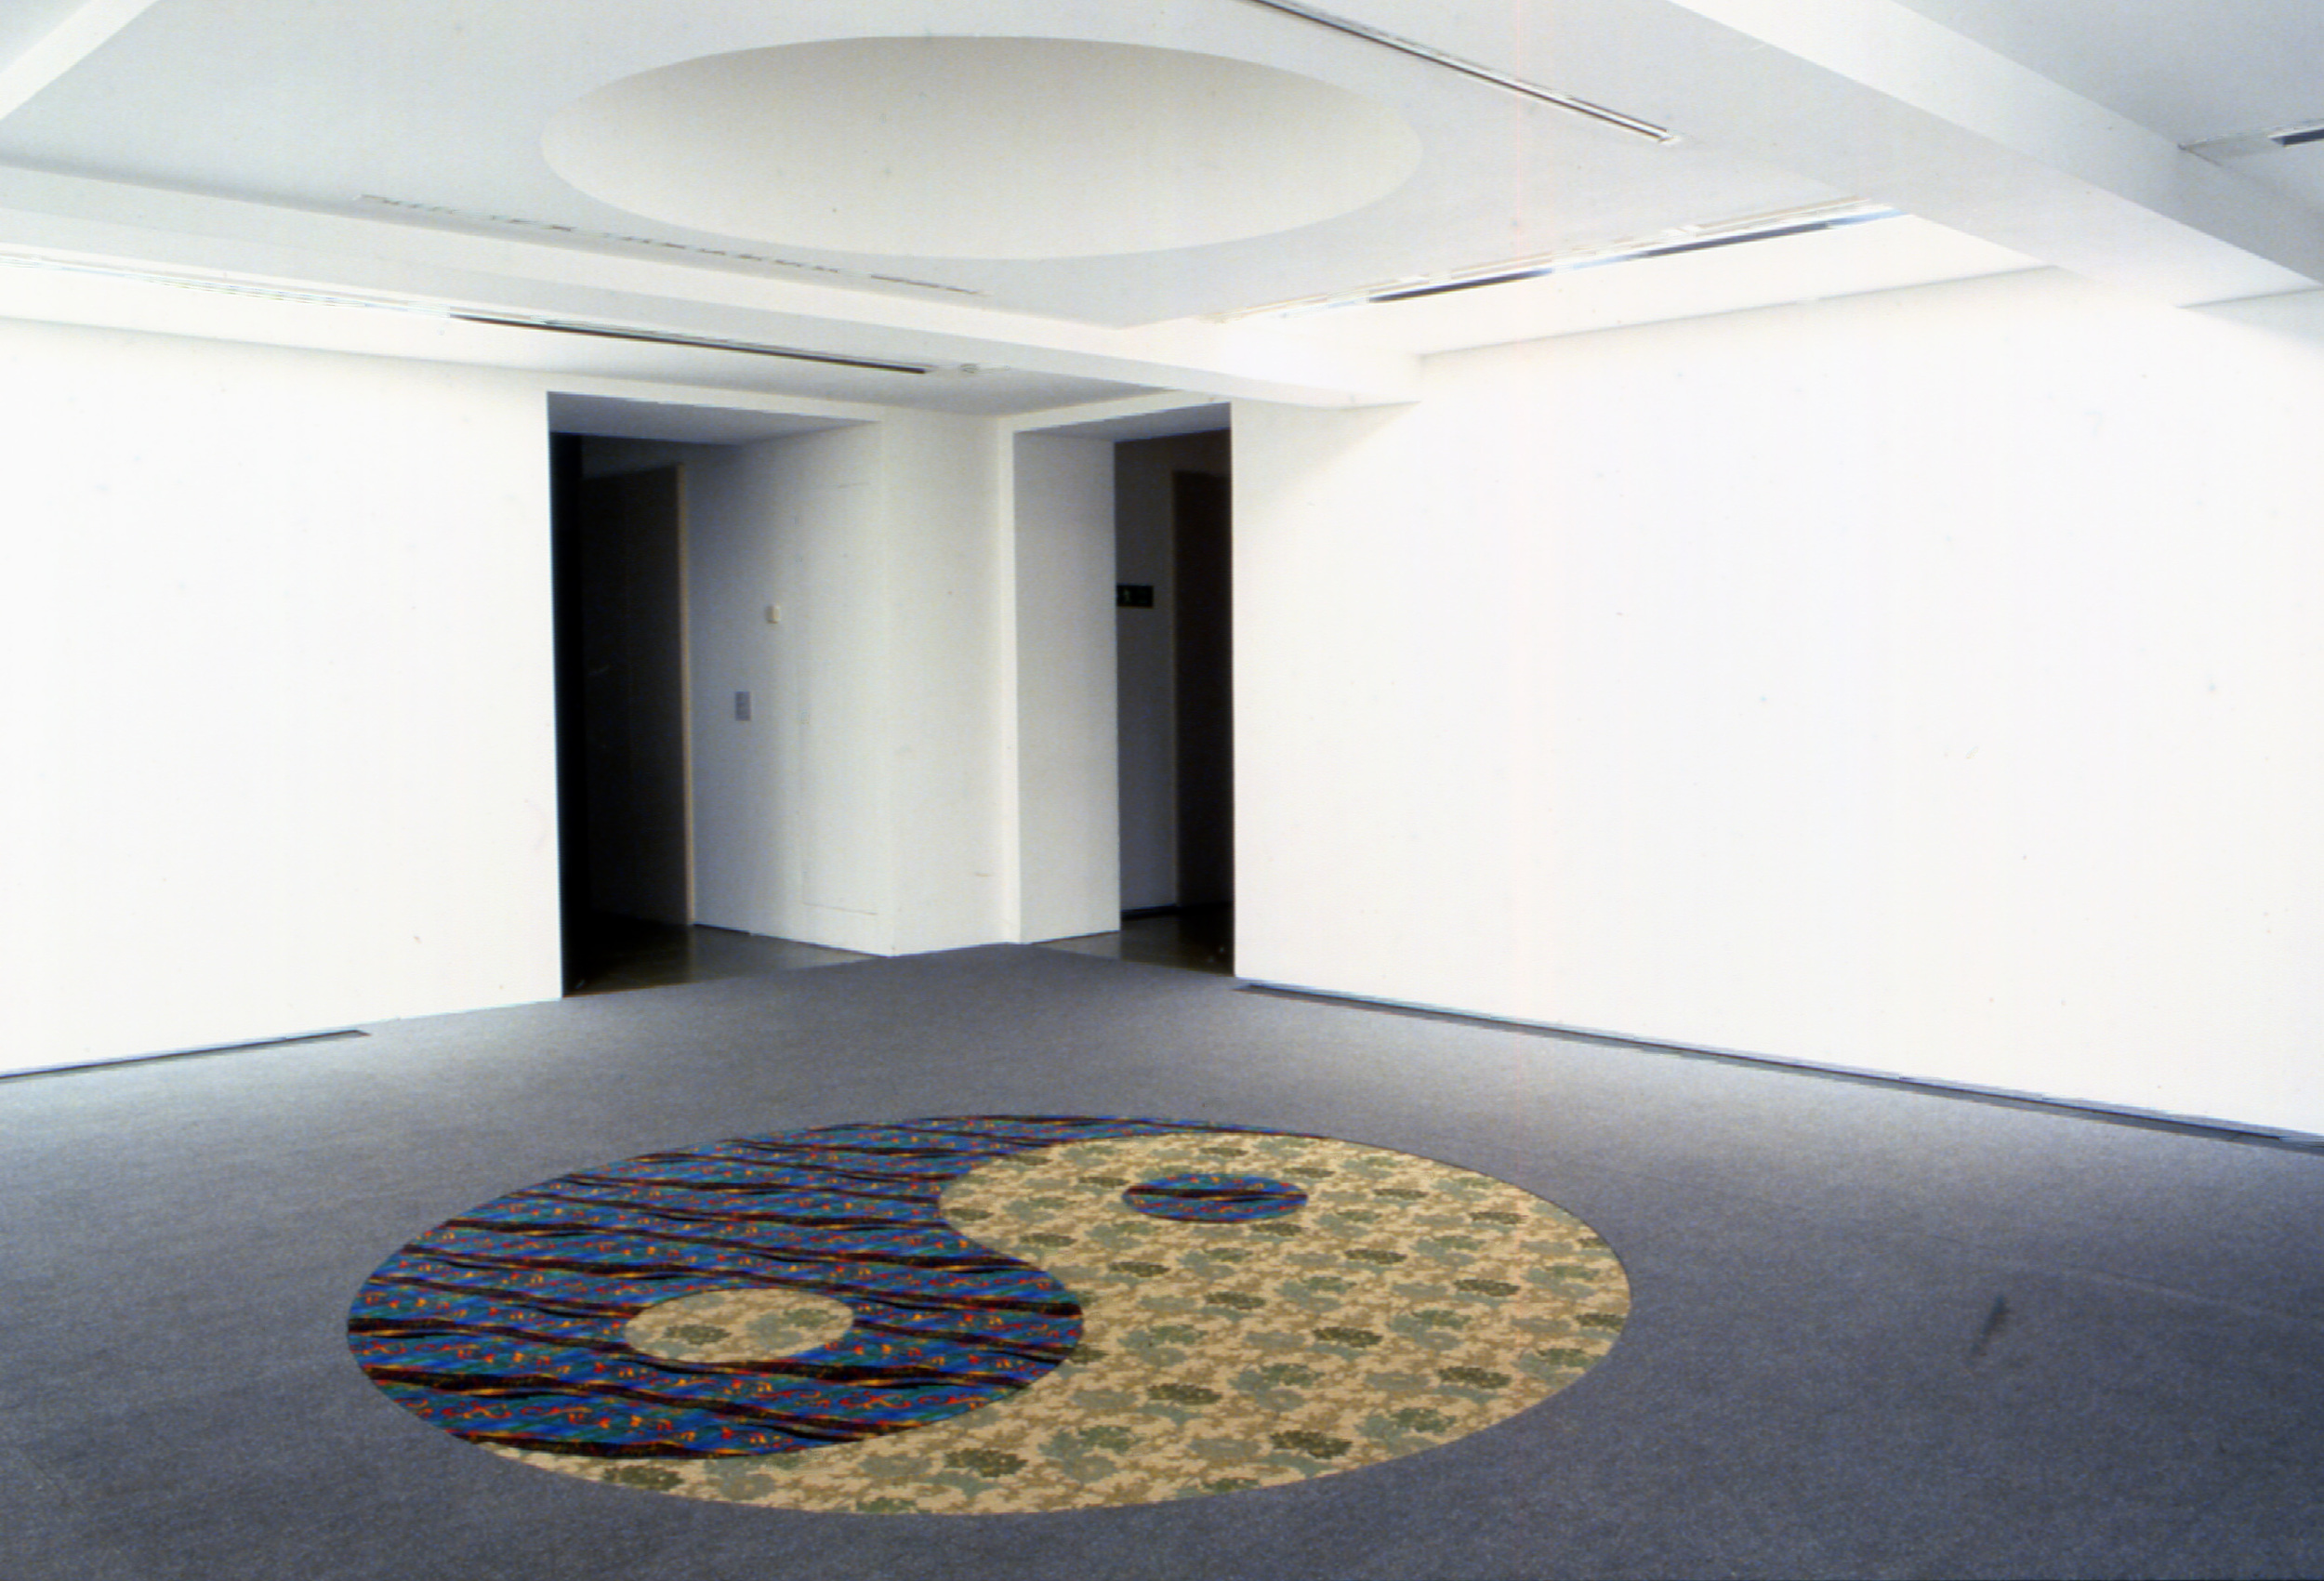 Installation view Serpentine Gallery, London 2005